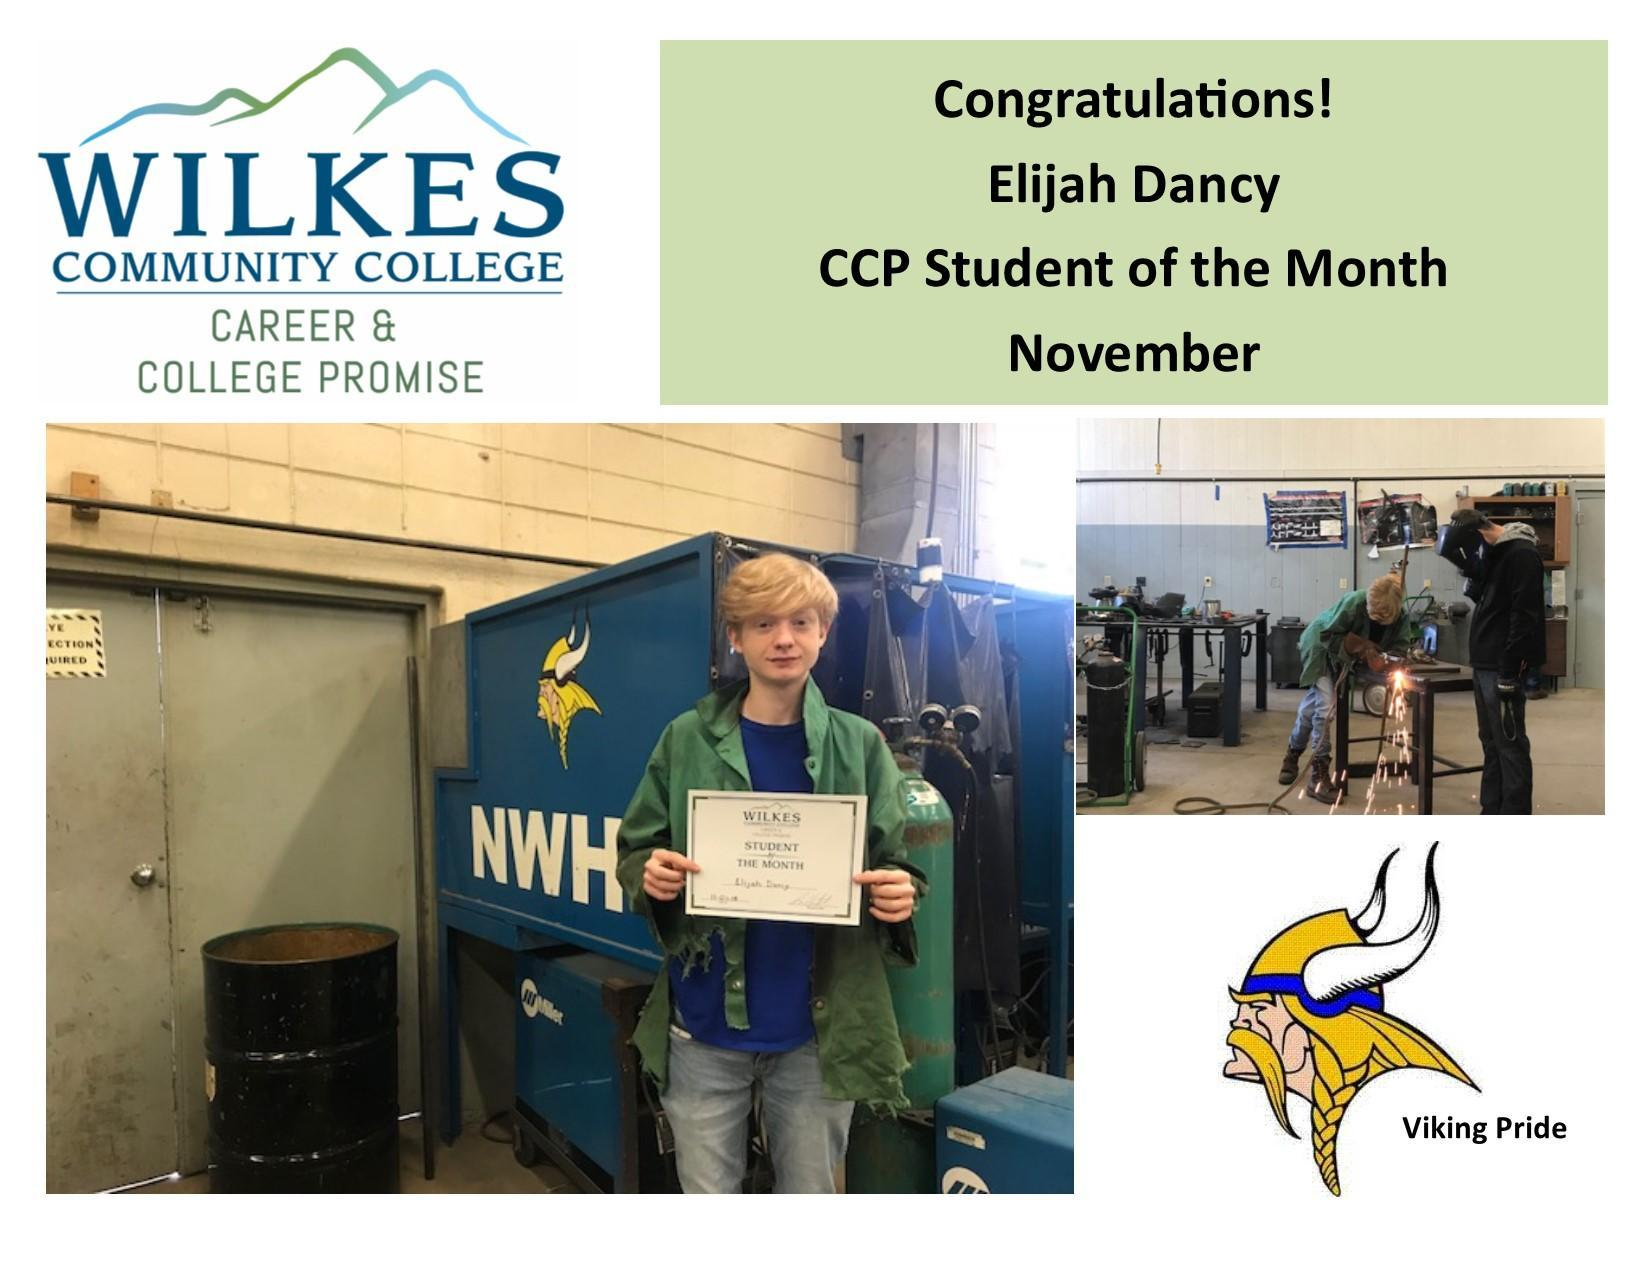 CCP Student of the Month